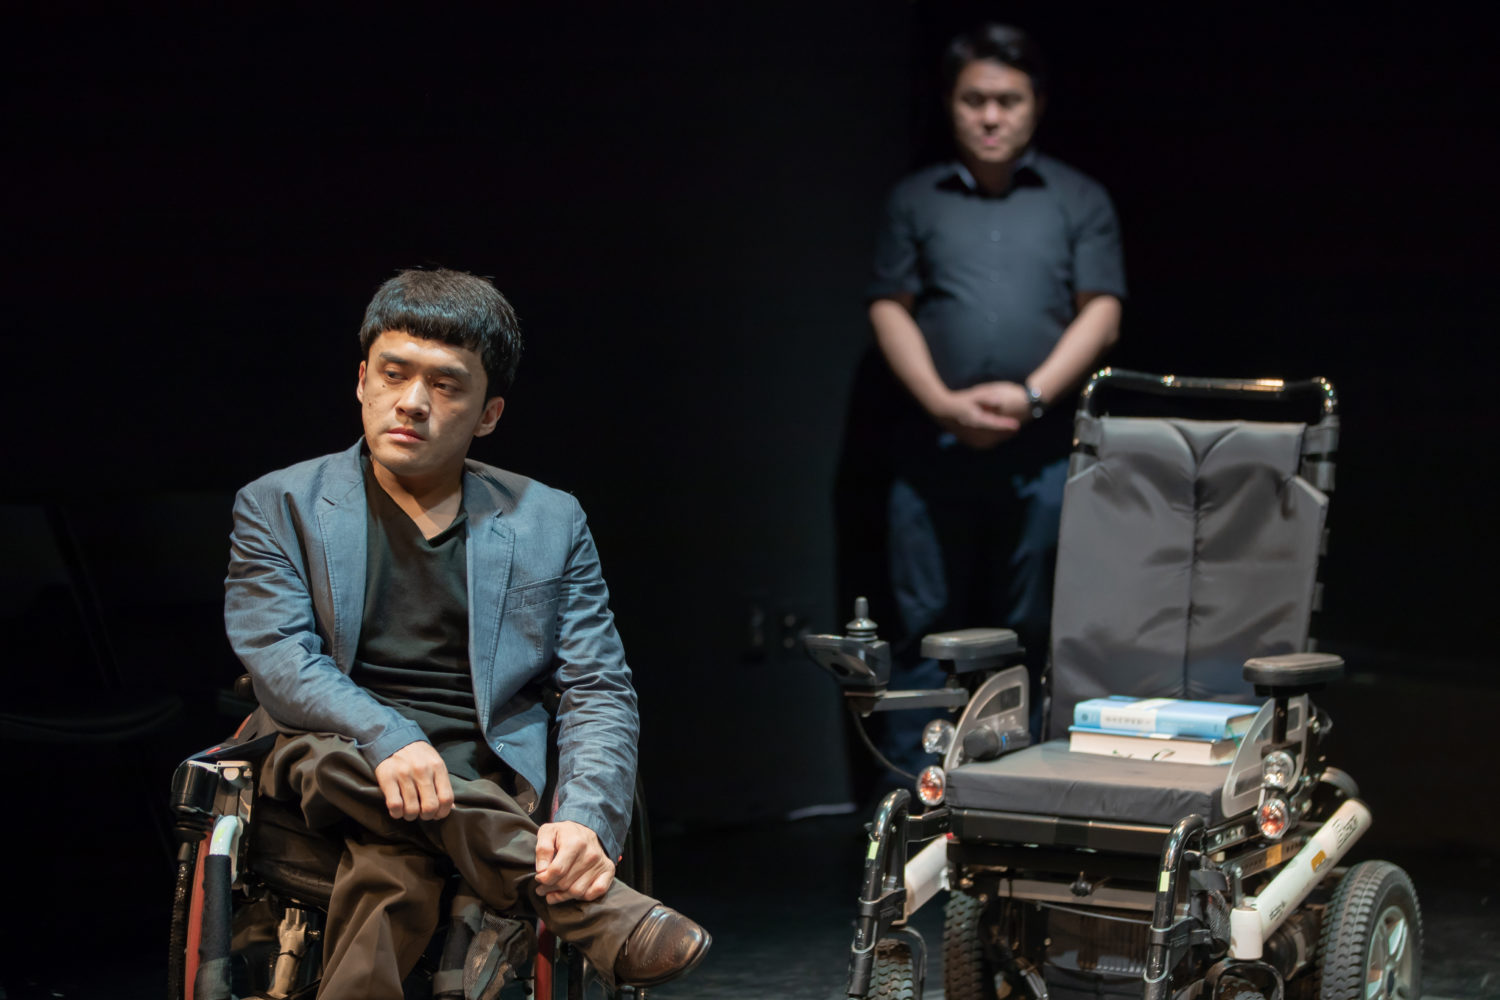 shows two men in a dramatic scene, one in front of the other, one in a wheelchair, the other standing behind.